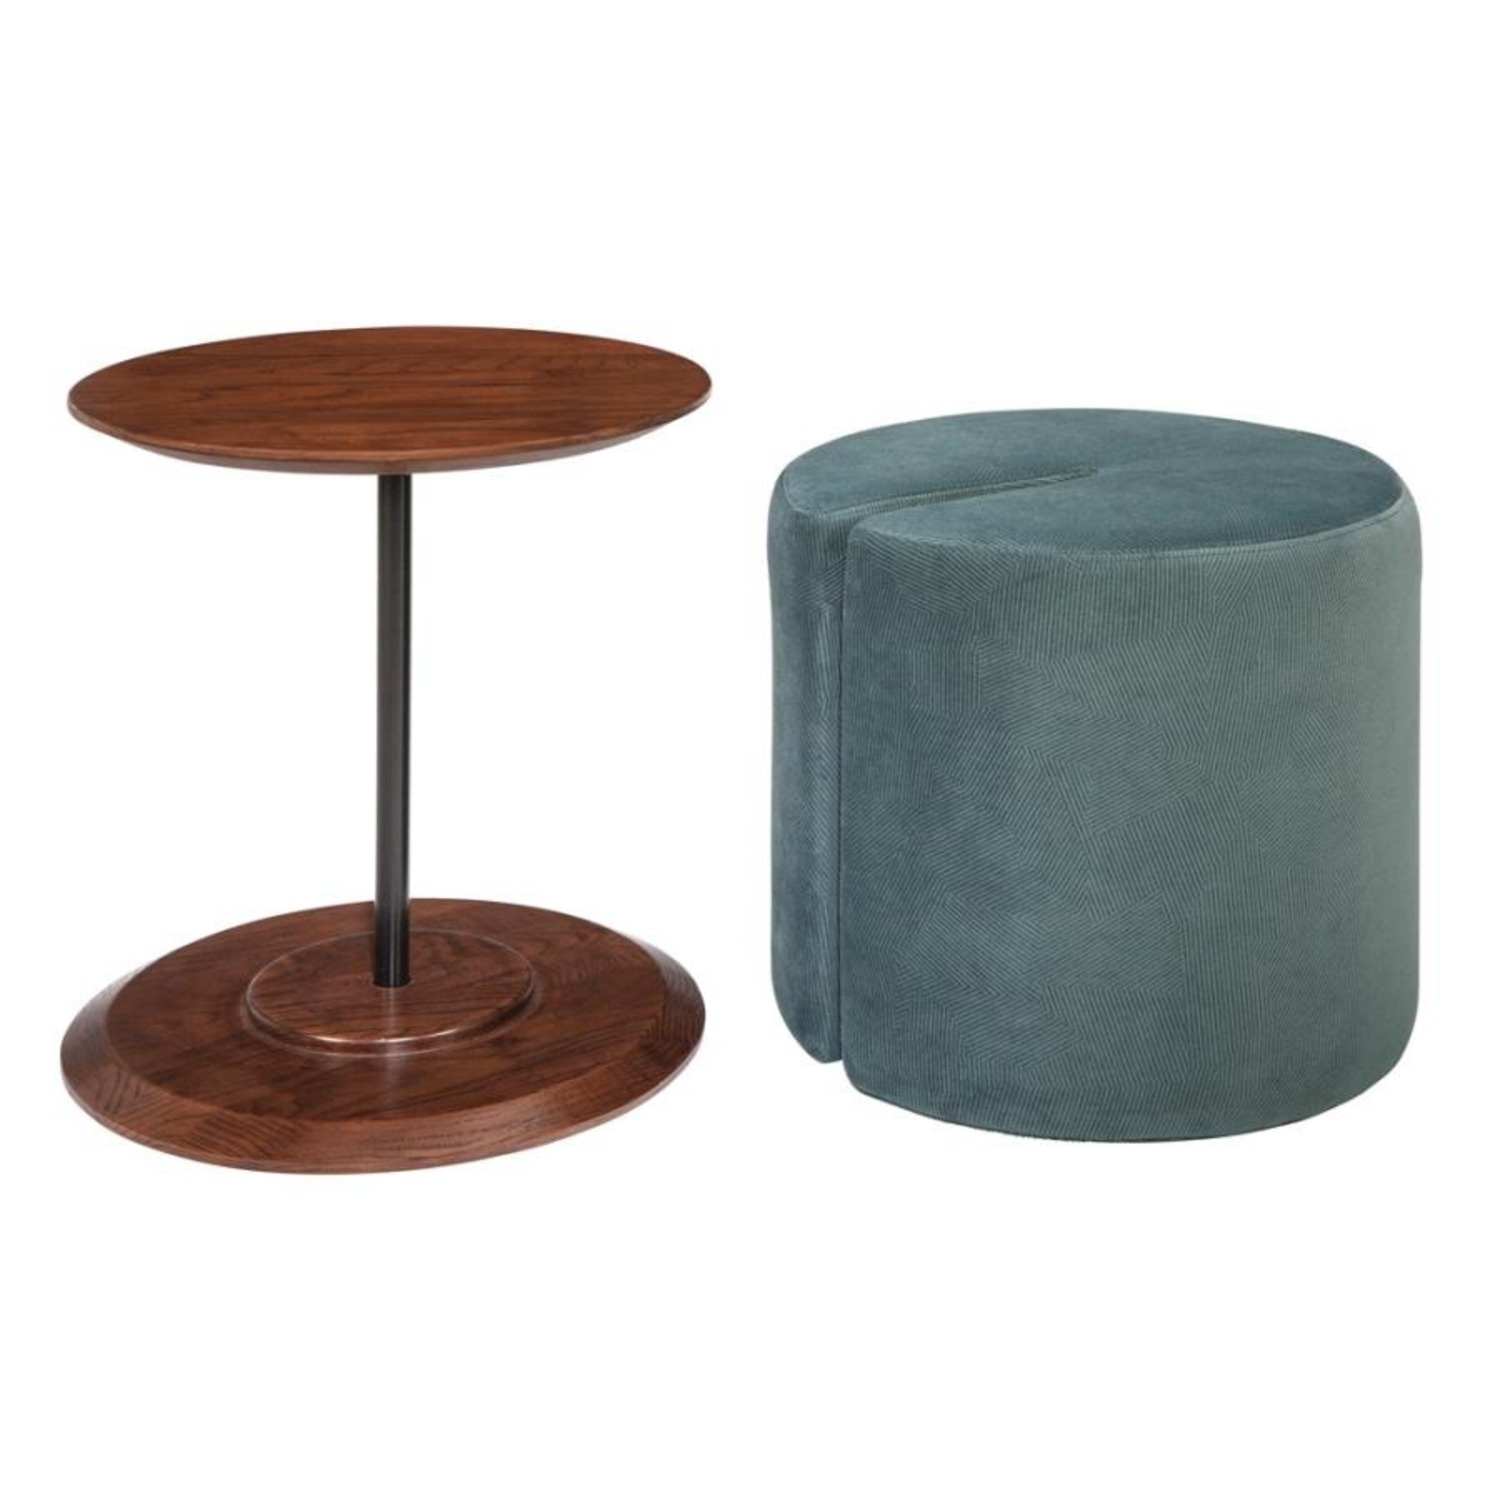 Accent Table W/ Ottoman In Teal Velvet Finish - image-1